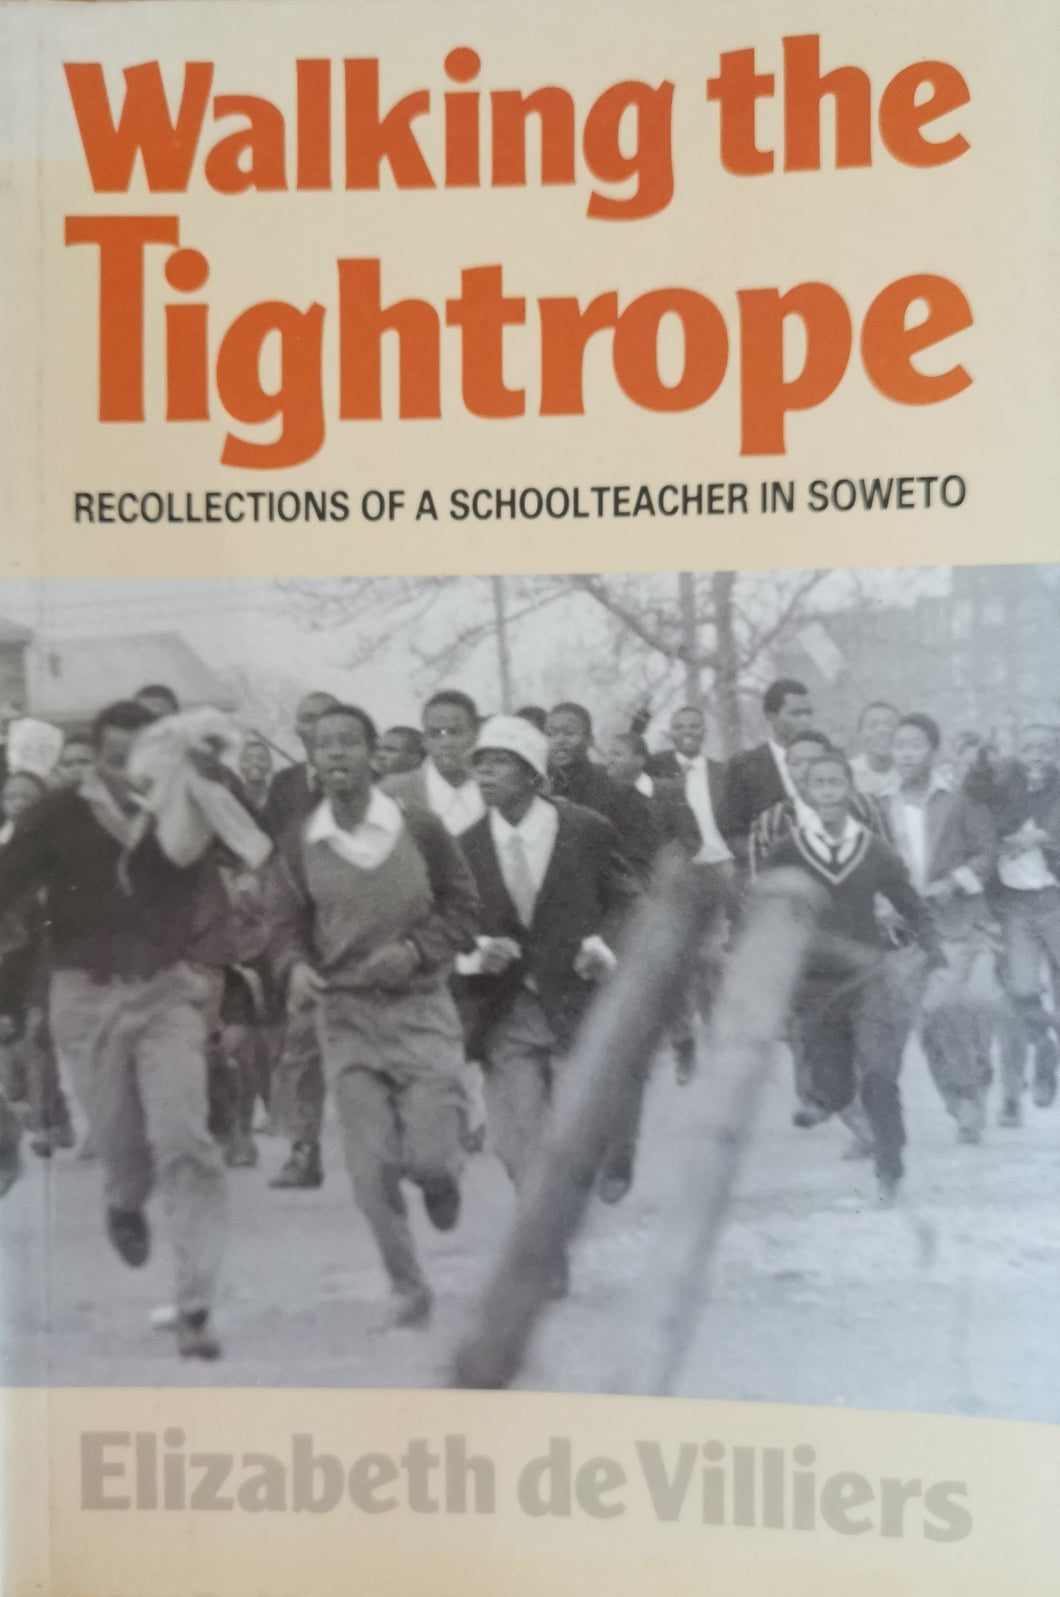 Walking the Tightrope: Recollections of a Schoolteacher in Soweto - Elizabeth de Villiers